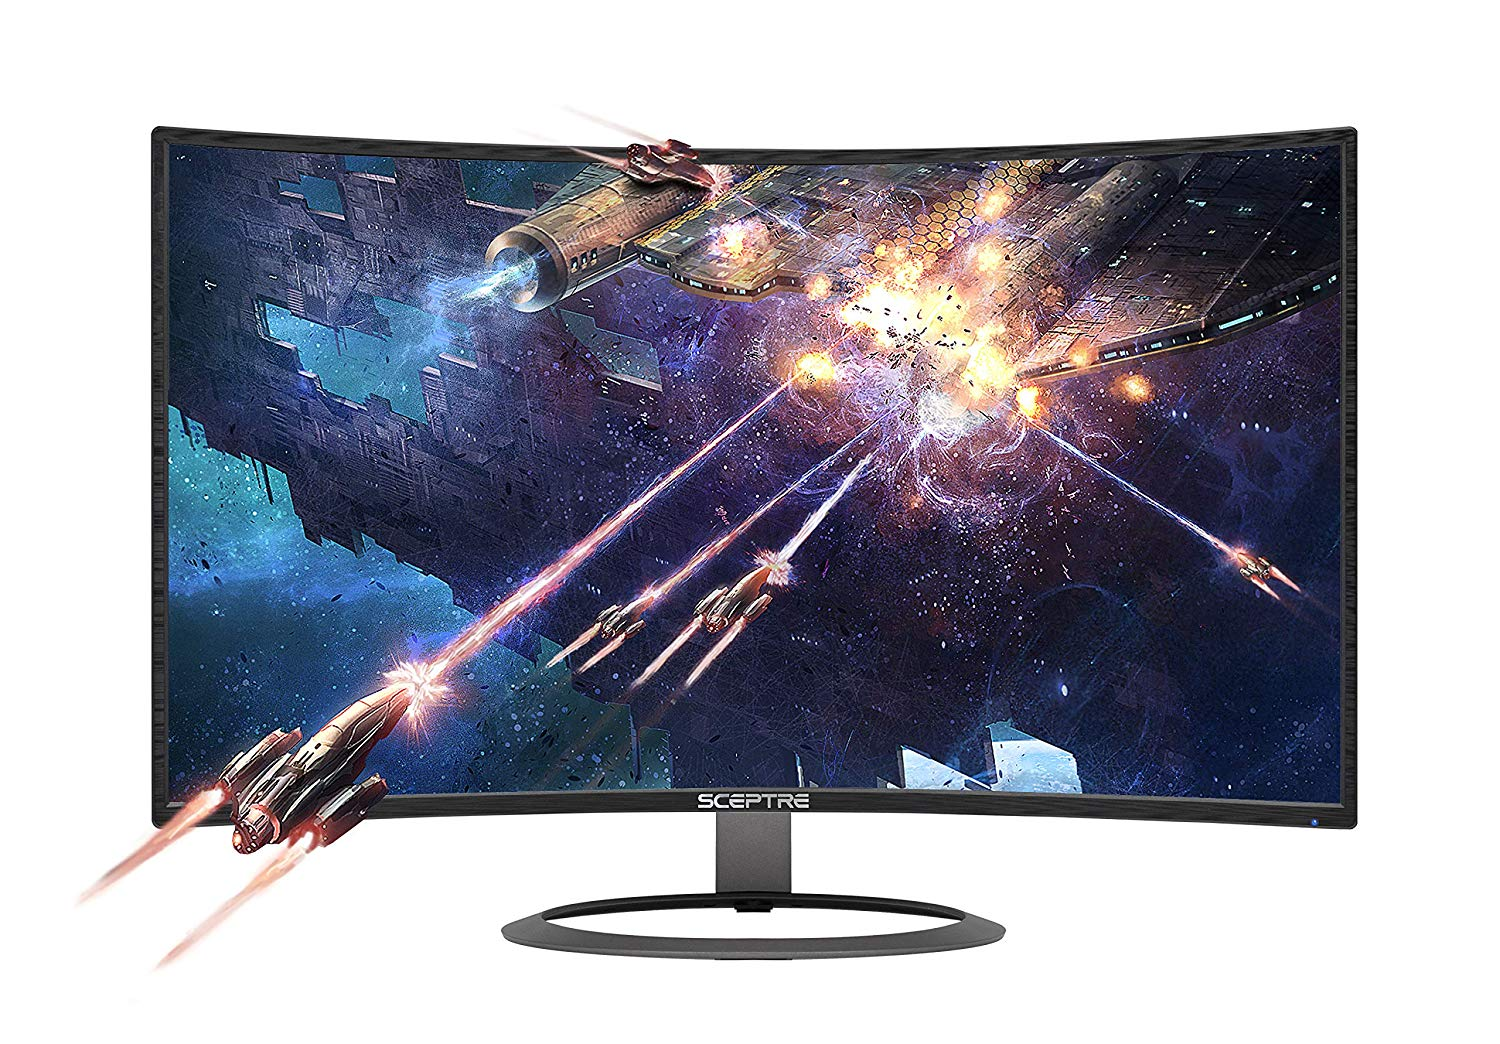 Sceptre Gaming Monitor